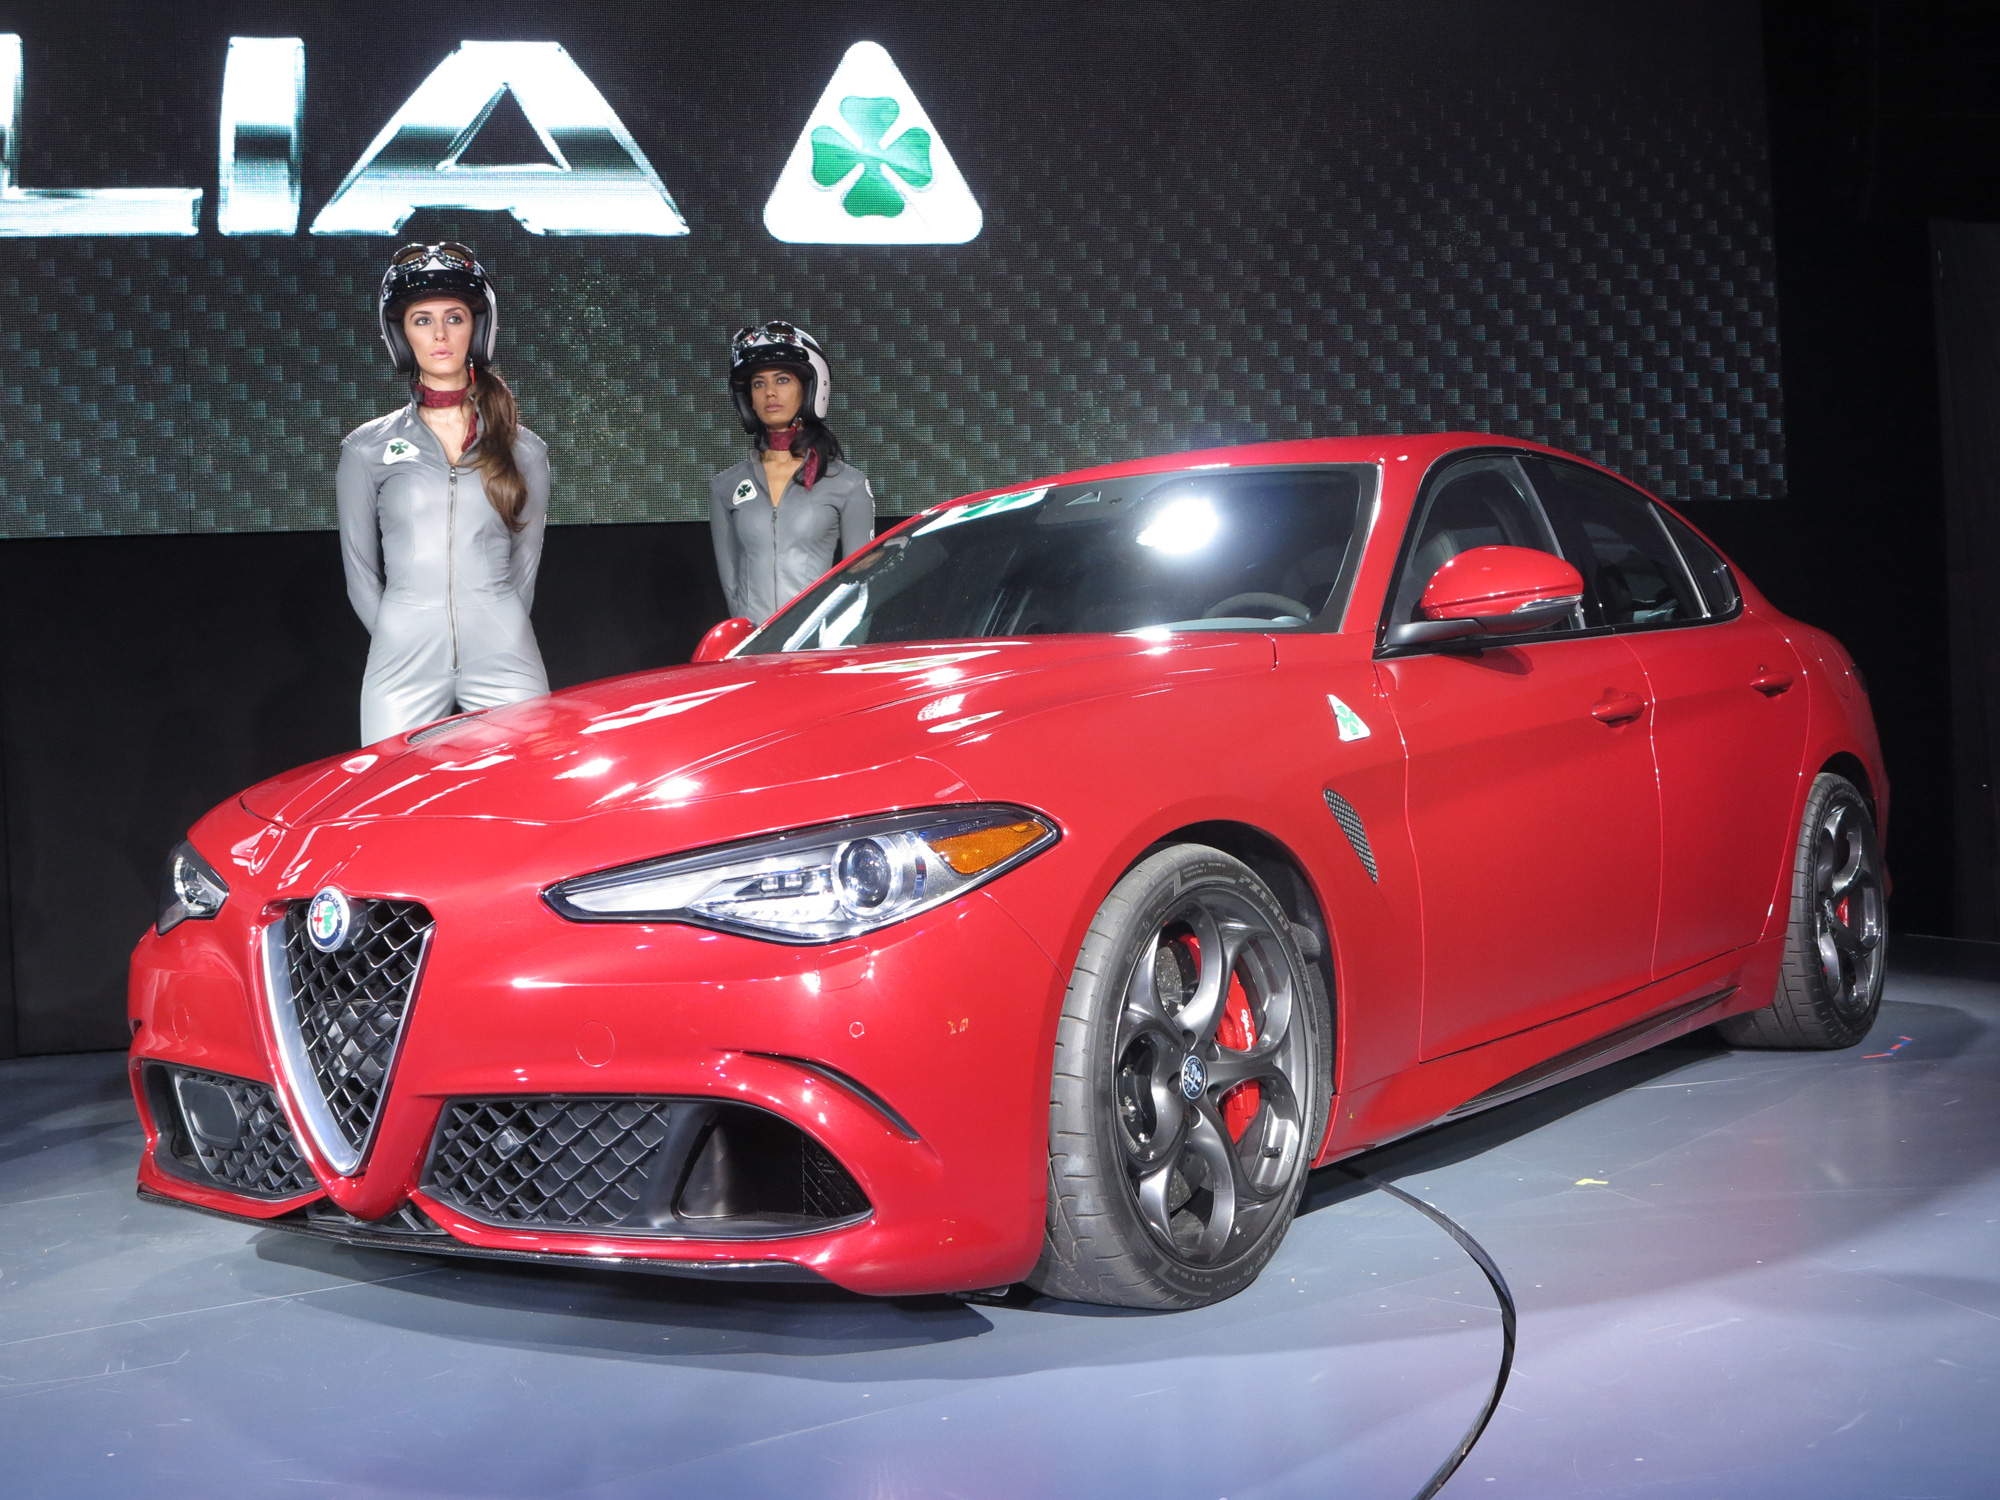 alfa romeo giulia pricing to start in the $40,000 range » autoguide